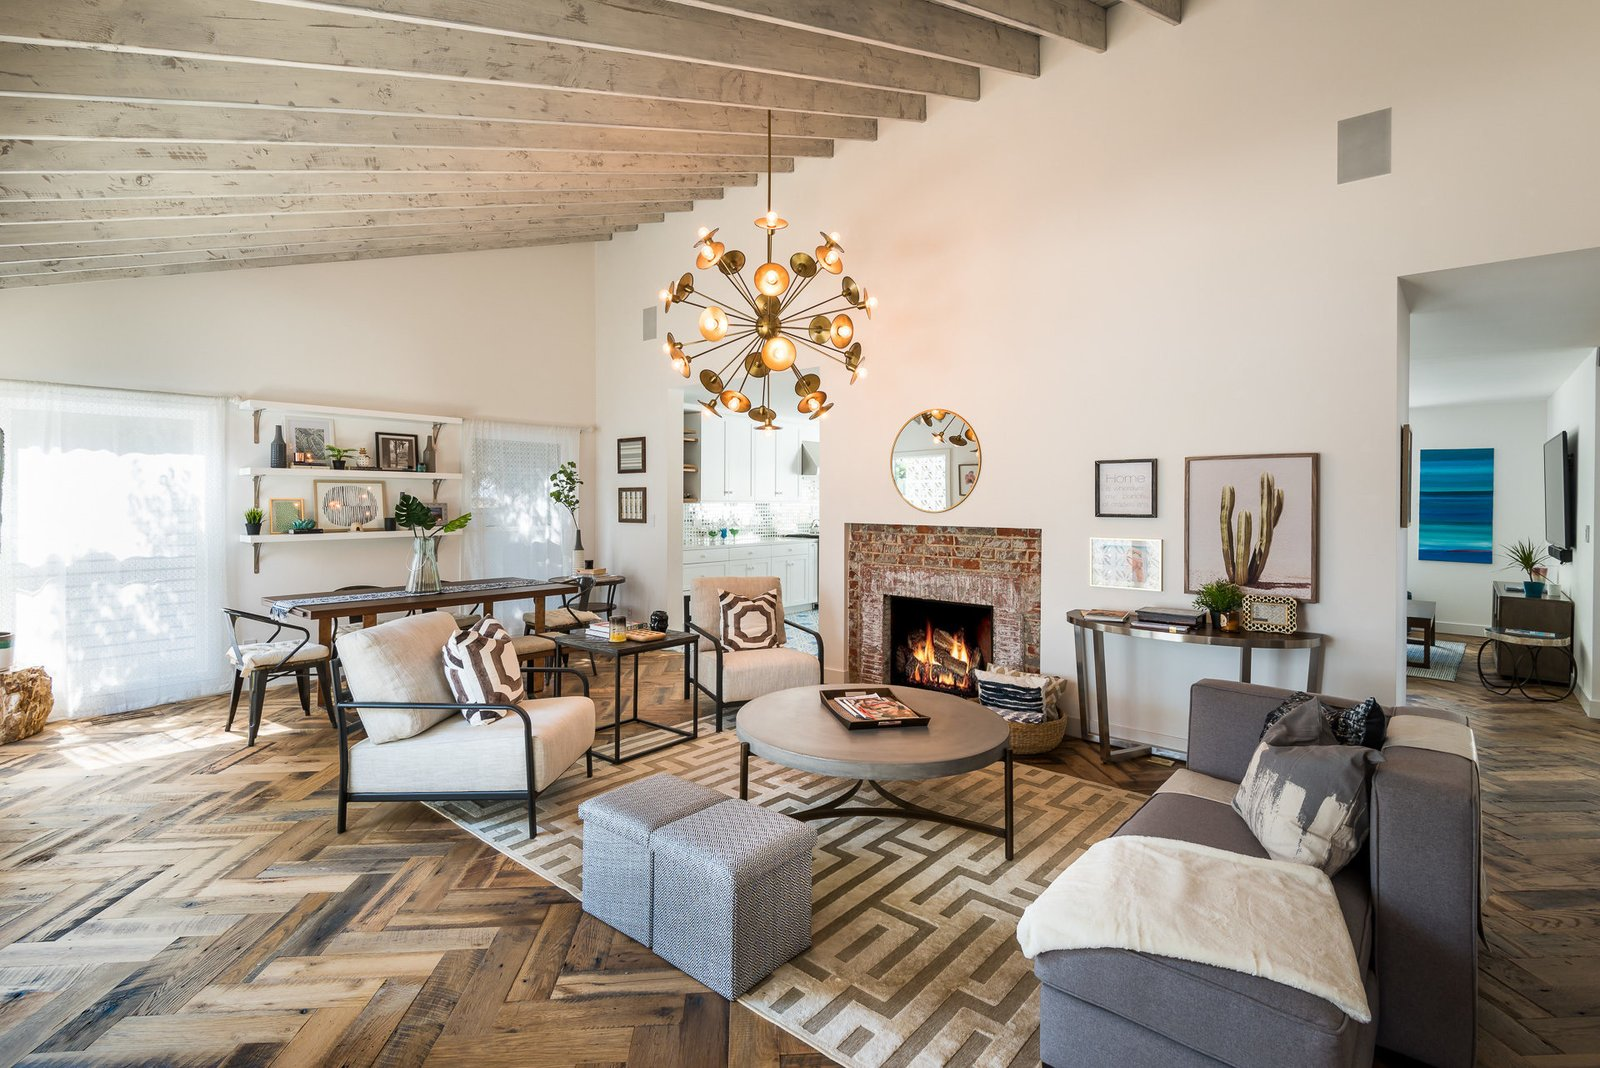 Living Room, Medium Hardwood Floor, Chair, Sofa, and Standard Layout Fireplace  Mid-Century Meets Boho Chic